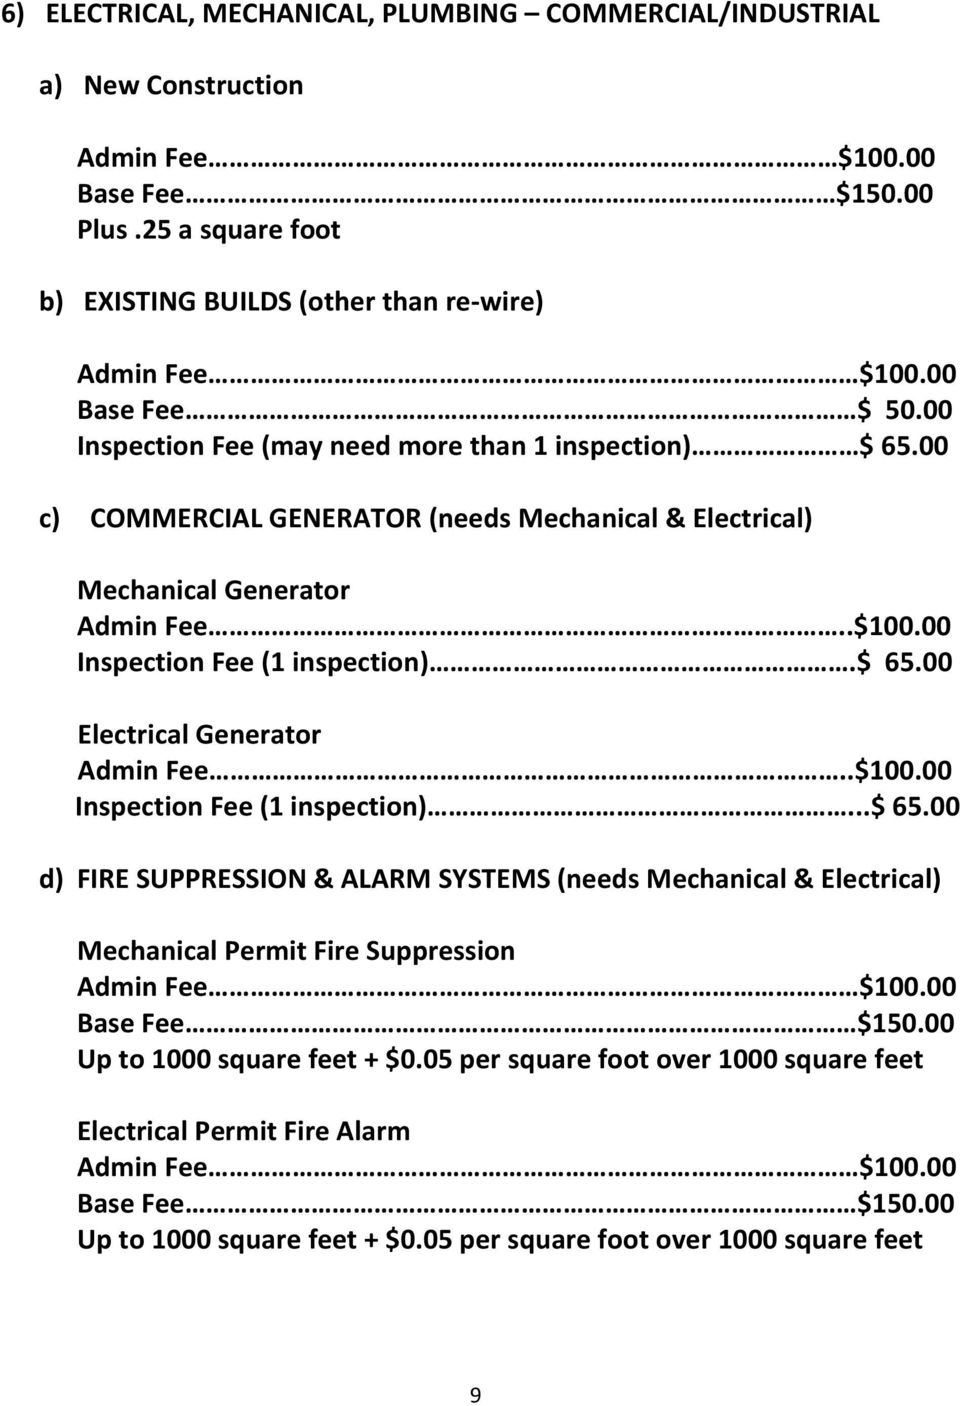 00 Inspection Fee (1 inspection).$ 65.00 Electrical Generator Admin Fee..$100.00 Inspection Fee (1 inspection)...$ 65.00 d) FIRE SUPPRESSION & ALARM SYSTEMS (needs Mechanical & Electrical) Mechanical Permit Fire Suppression Admin Fee $100.